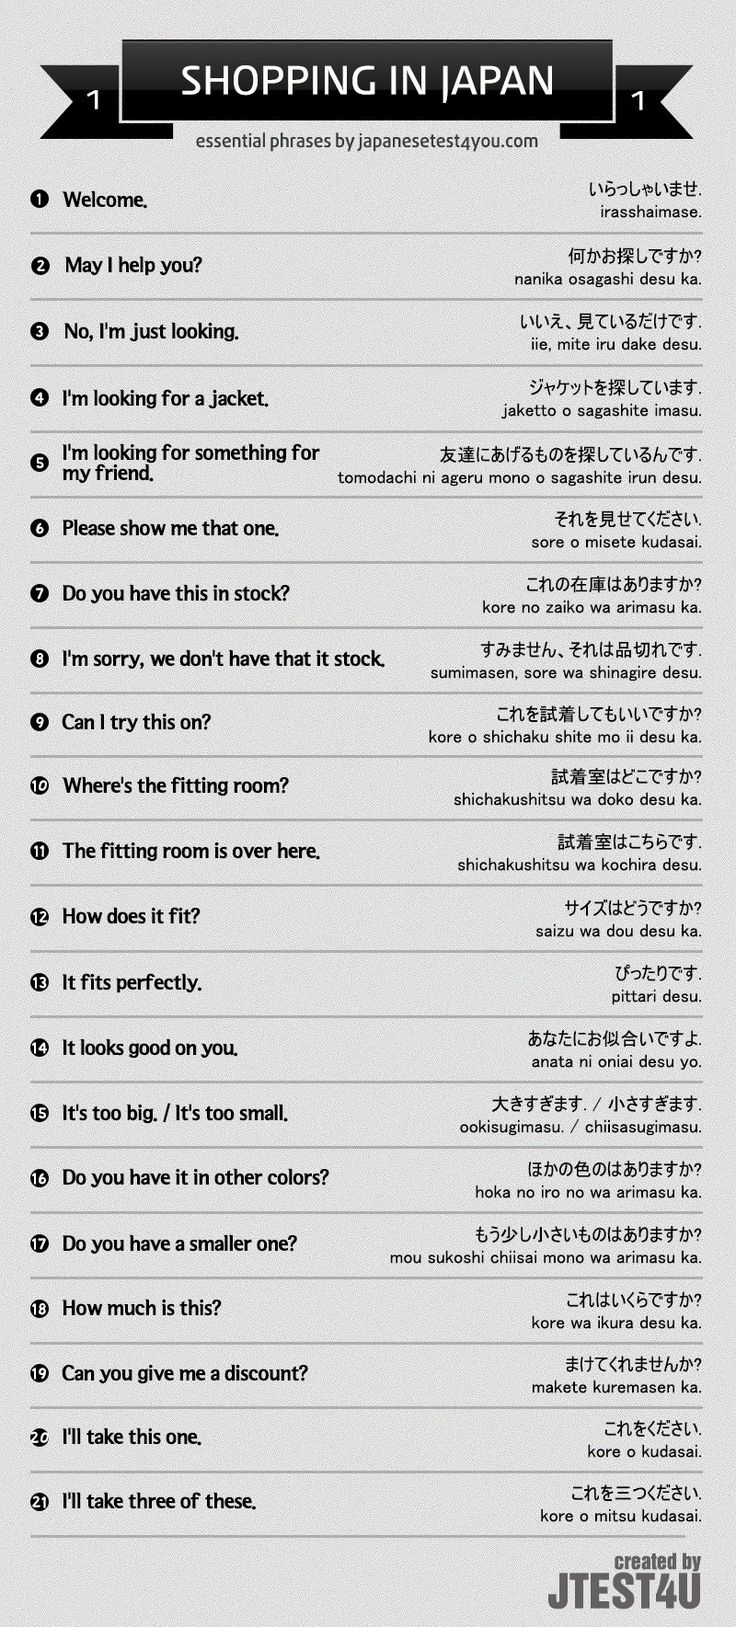 Essential Japanese phrases for shopping part 1. http://japanesetest4you.com/infographic-essential-japanese-phrases-for-shopping-part-1/